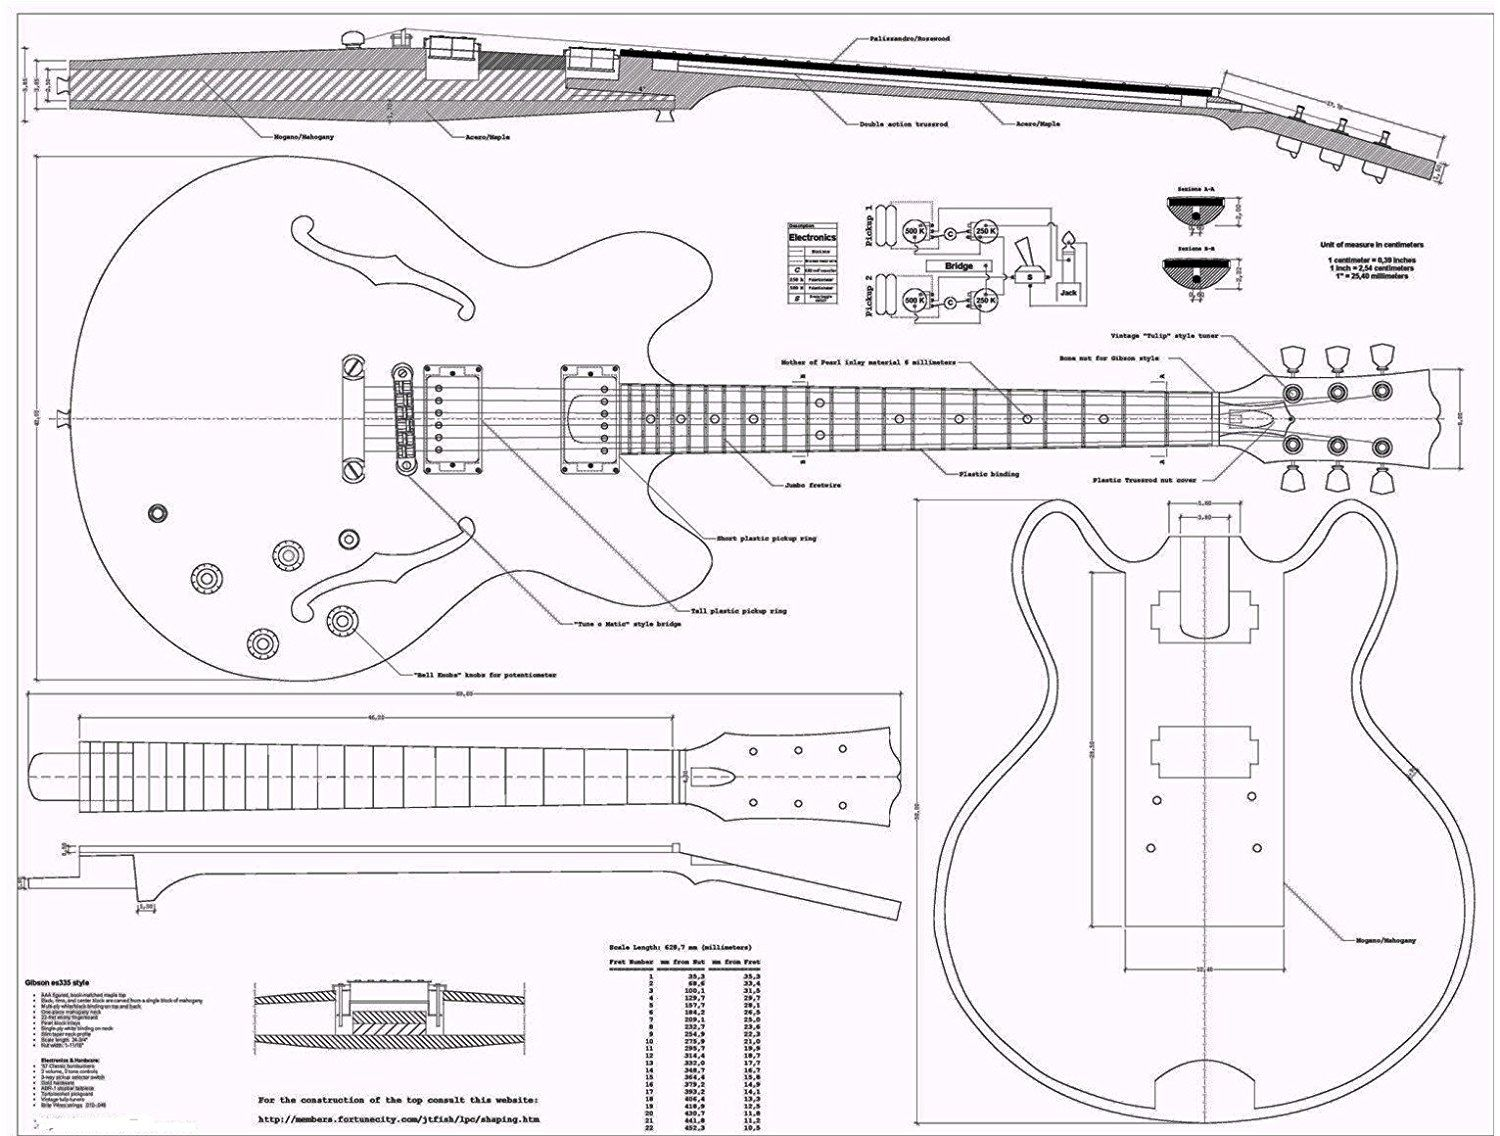 hight resolution of gibson es335 jazz guitar plans full scale how to buildgibson es335 jazz guitar plans full scale